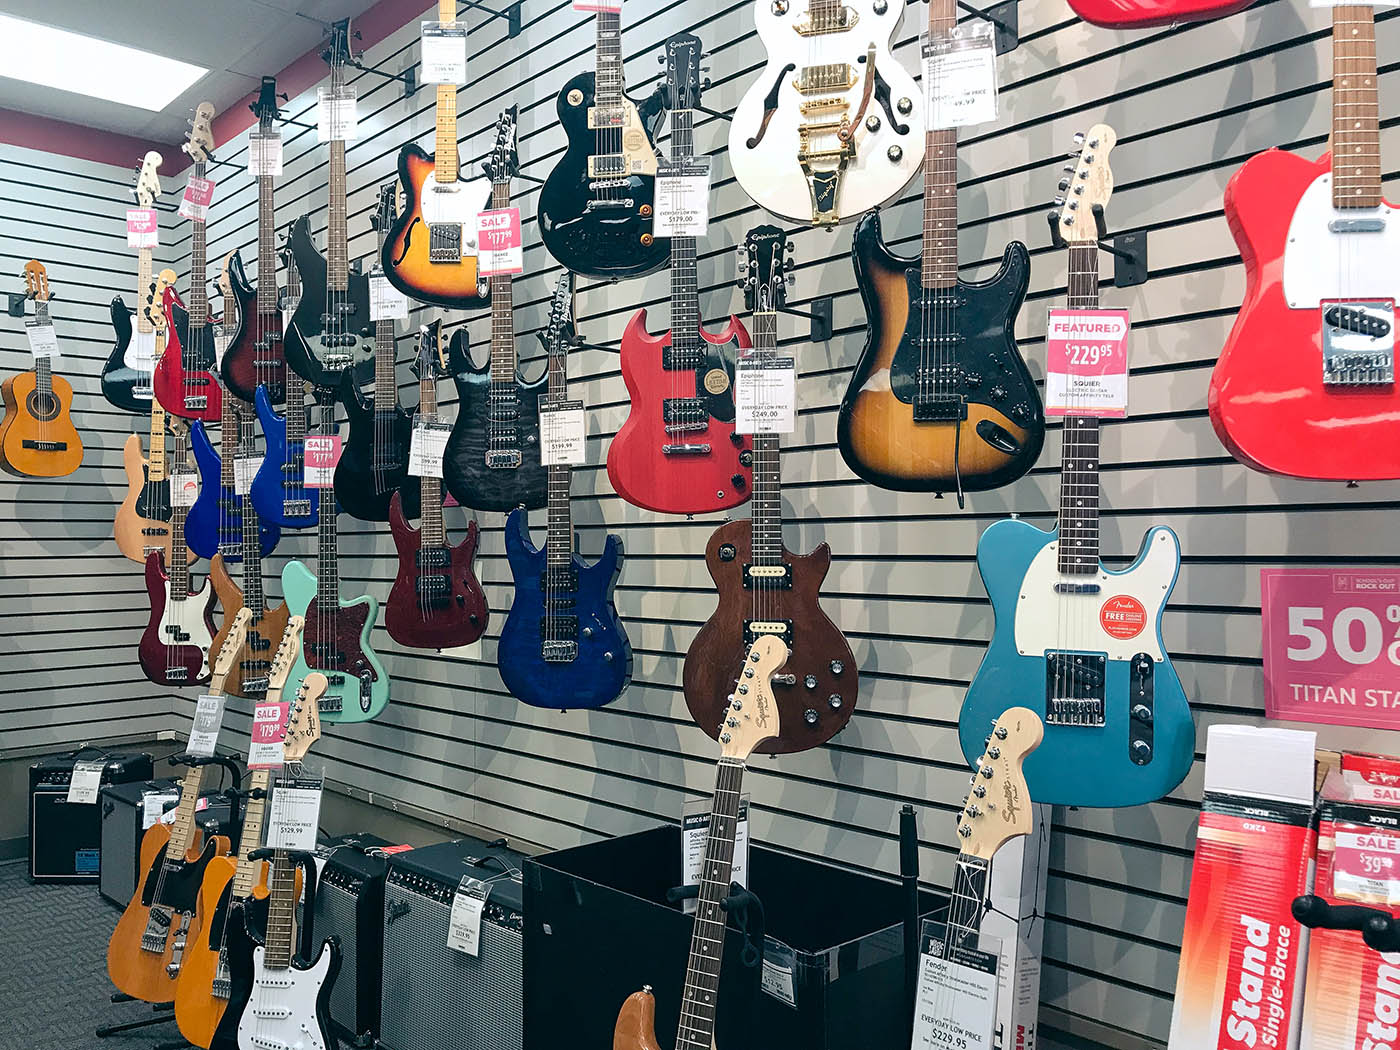 Where to take private music lessons with great instructors